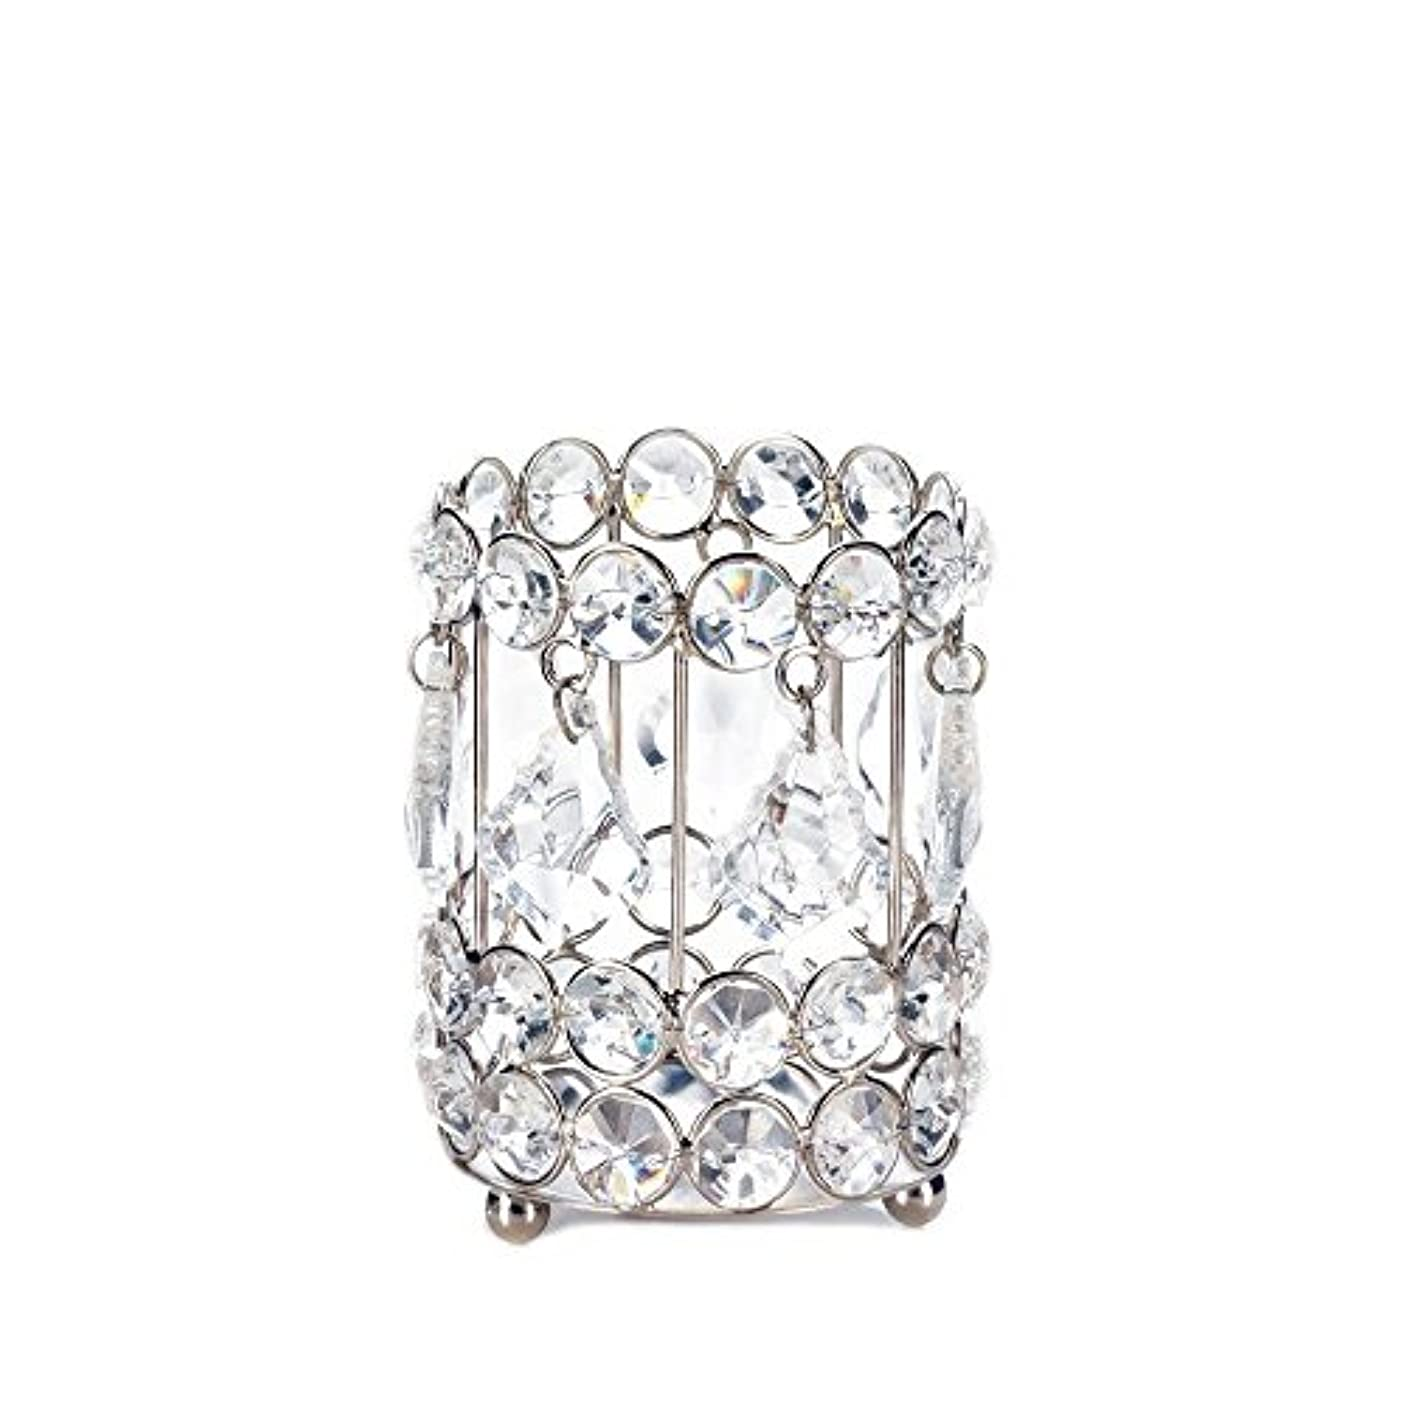 Gallery of Light 10018136 Super Bling Crystal Drops Candle Holder - 4 in.